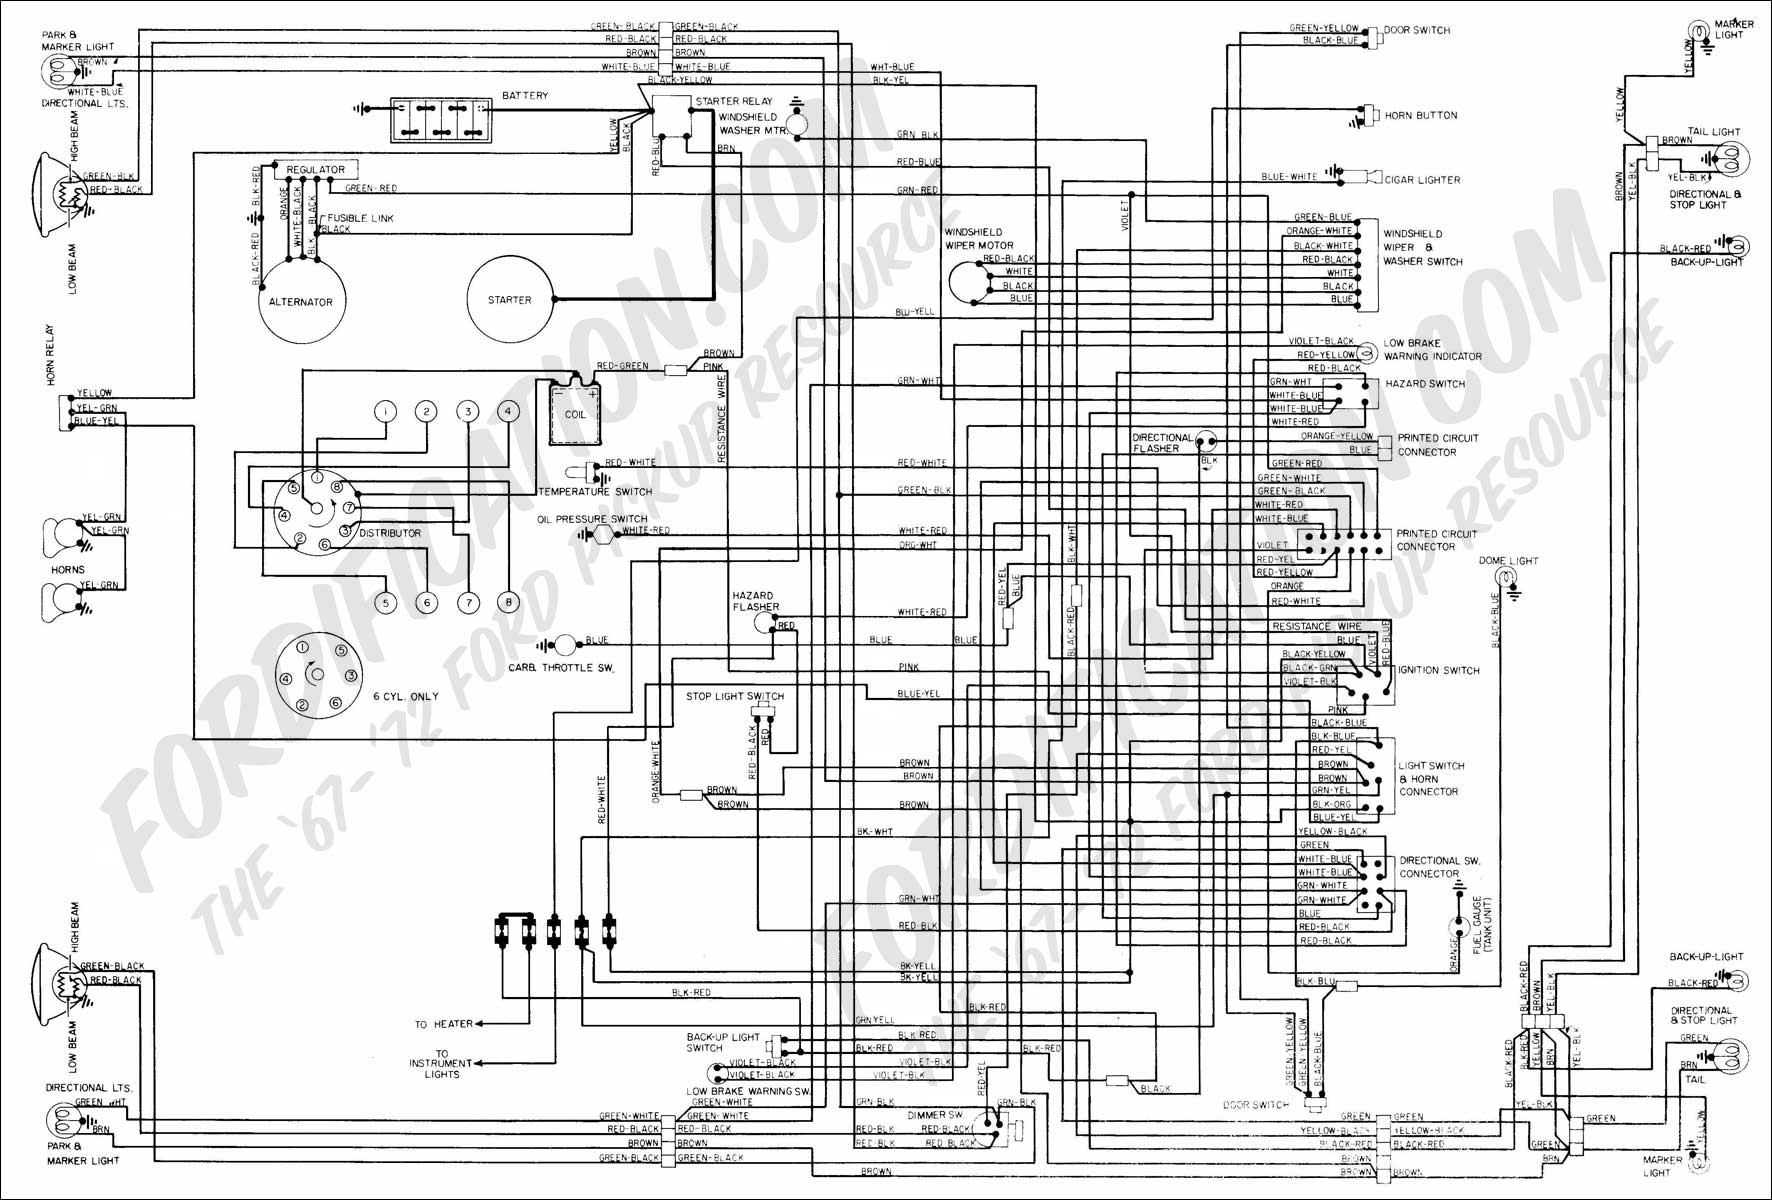 2004 ford f150 wiring harness wiring diagram 2006 Ford F 150 Wiring Harness Diagram 2007 ford f 150 wiring harness wiring